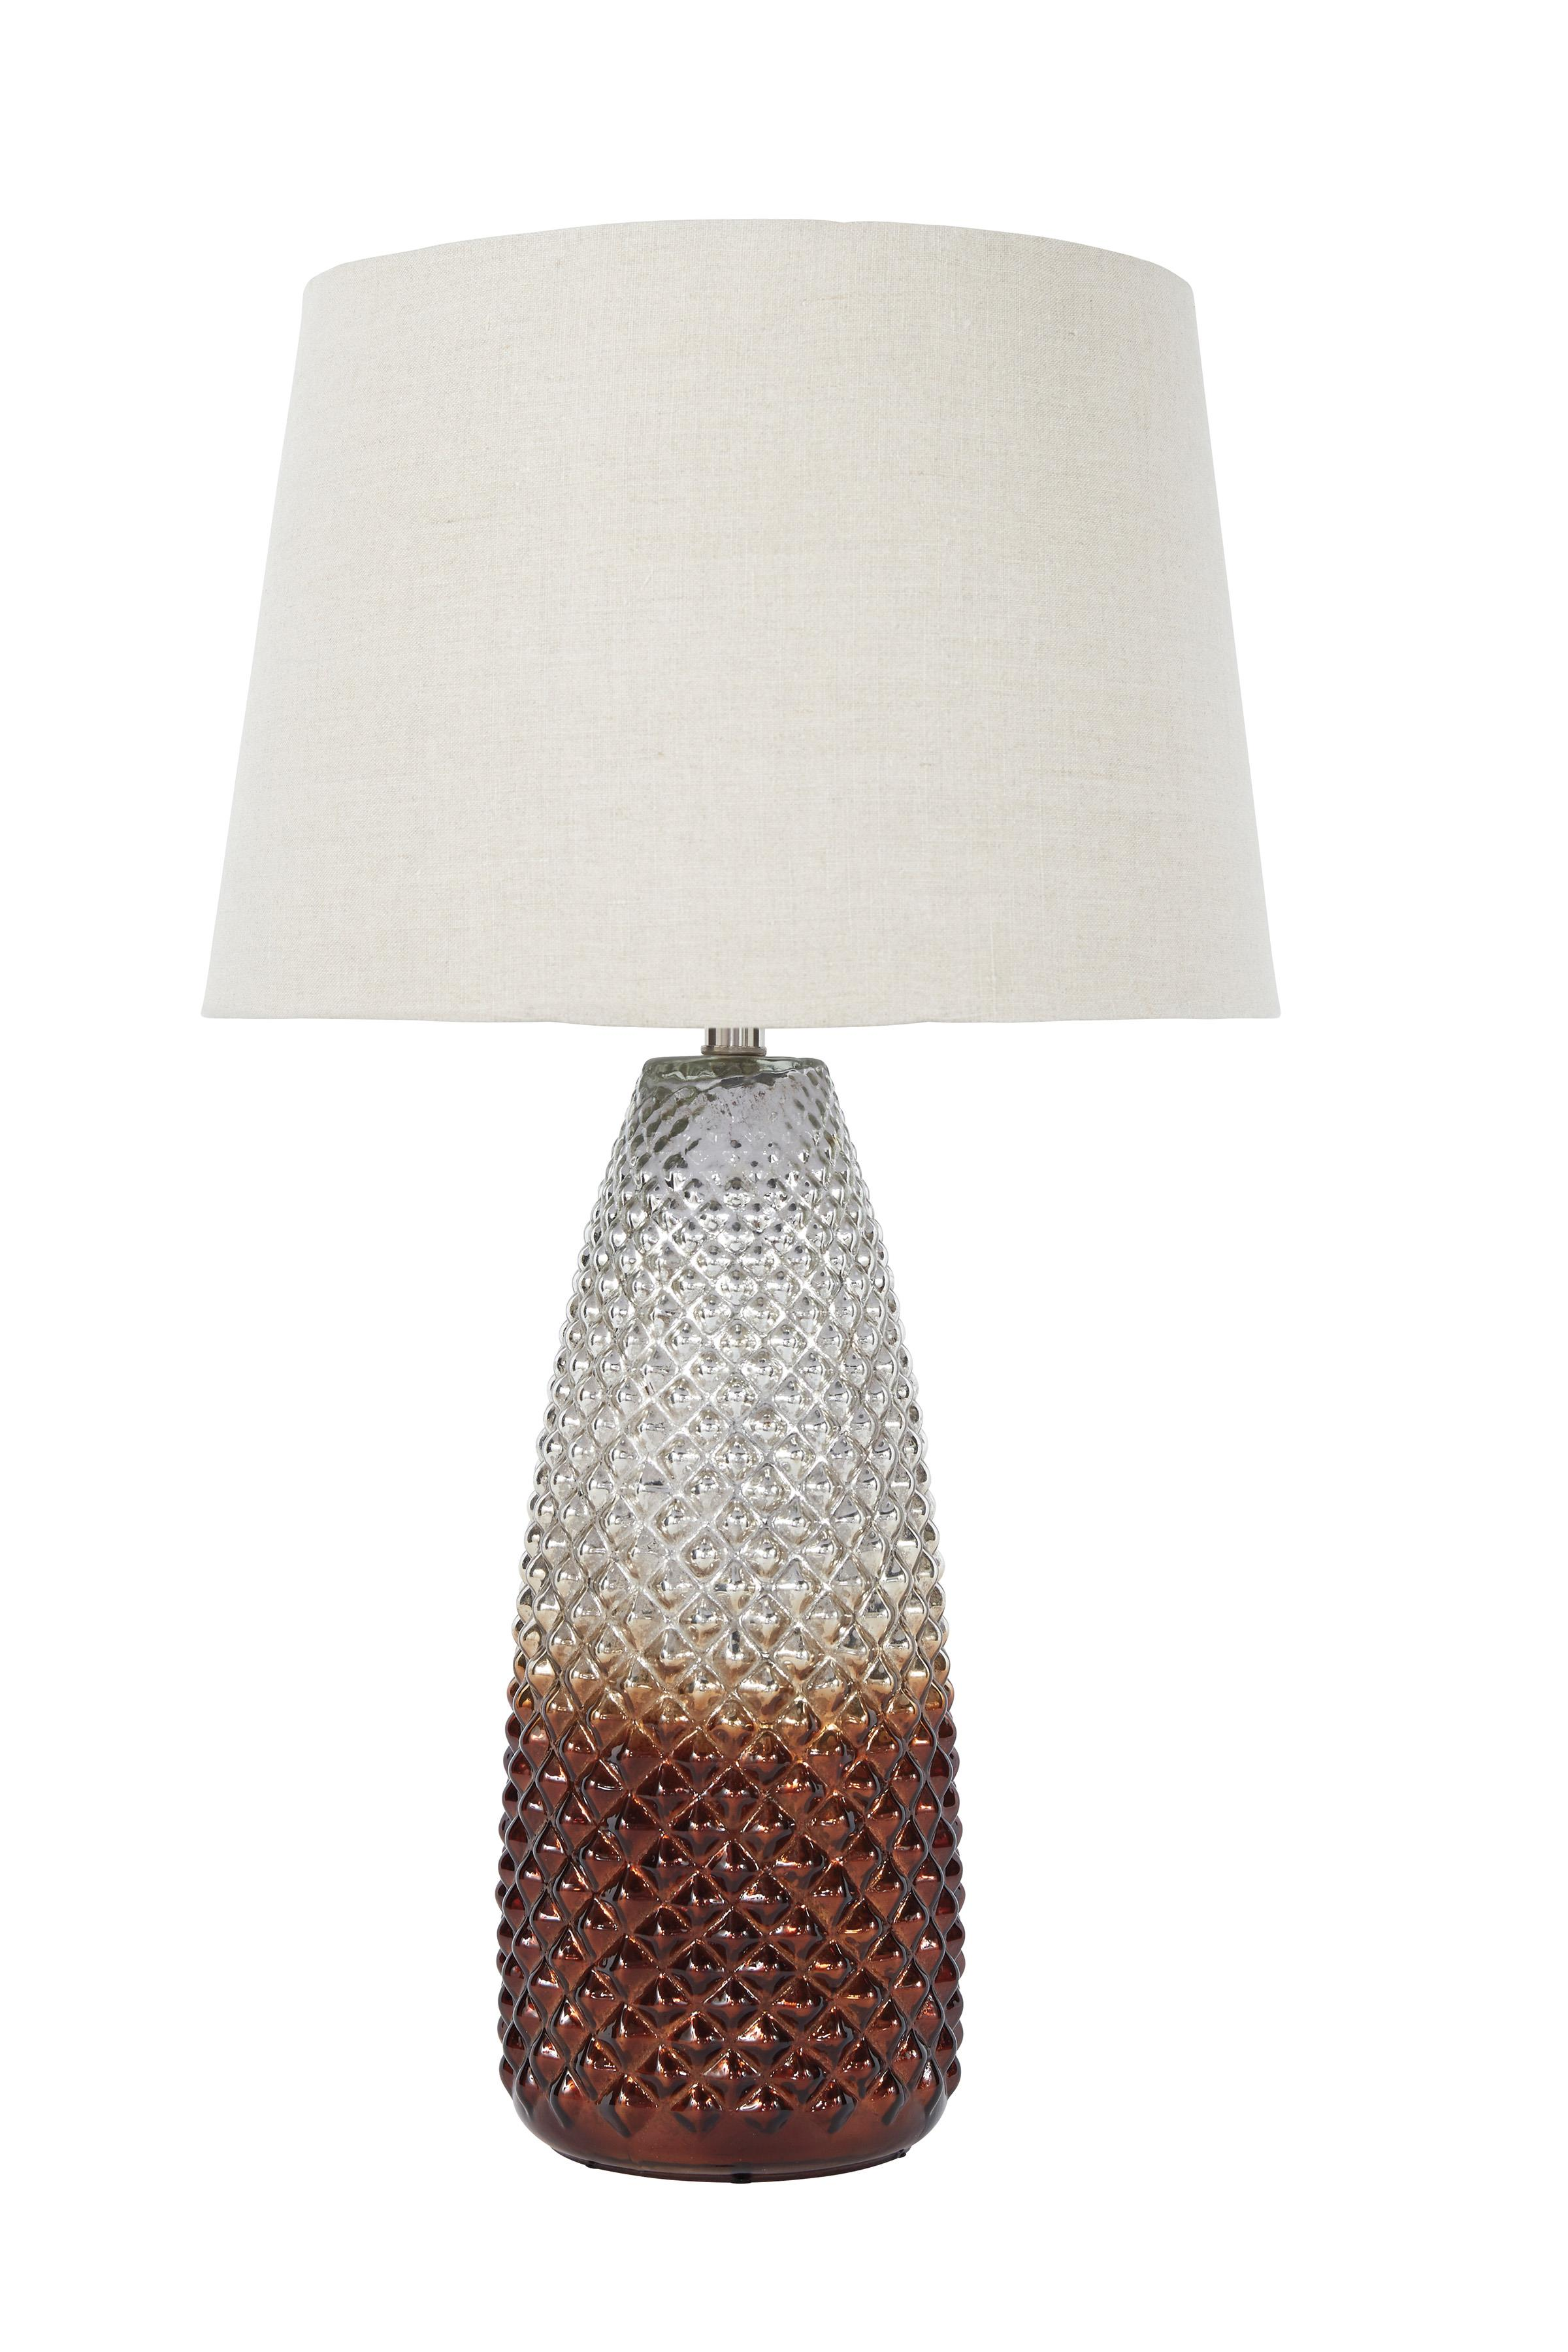 Signature Design by Ashley Lamps - Vintage Style Shavondra Mercury Glass Table Lamp - Item Number: L430234